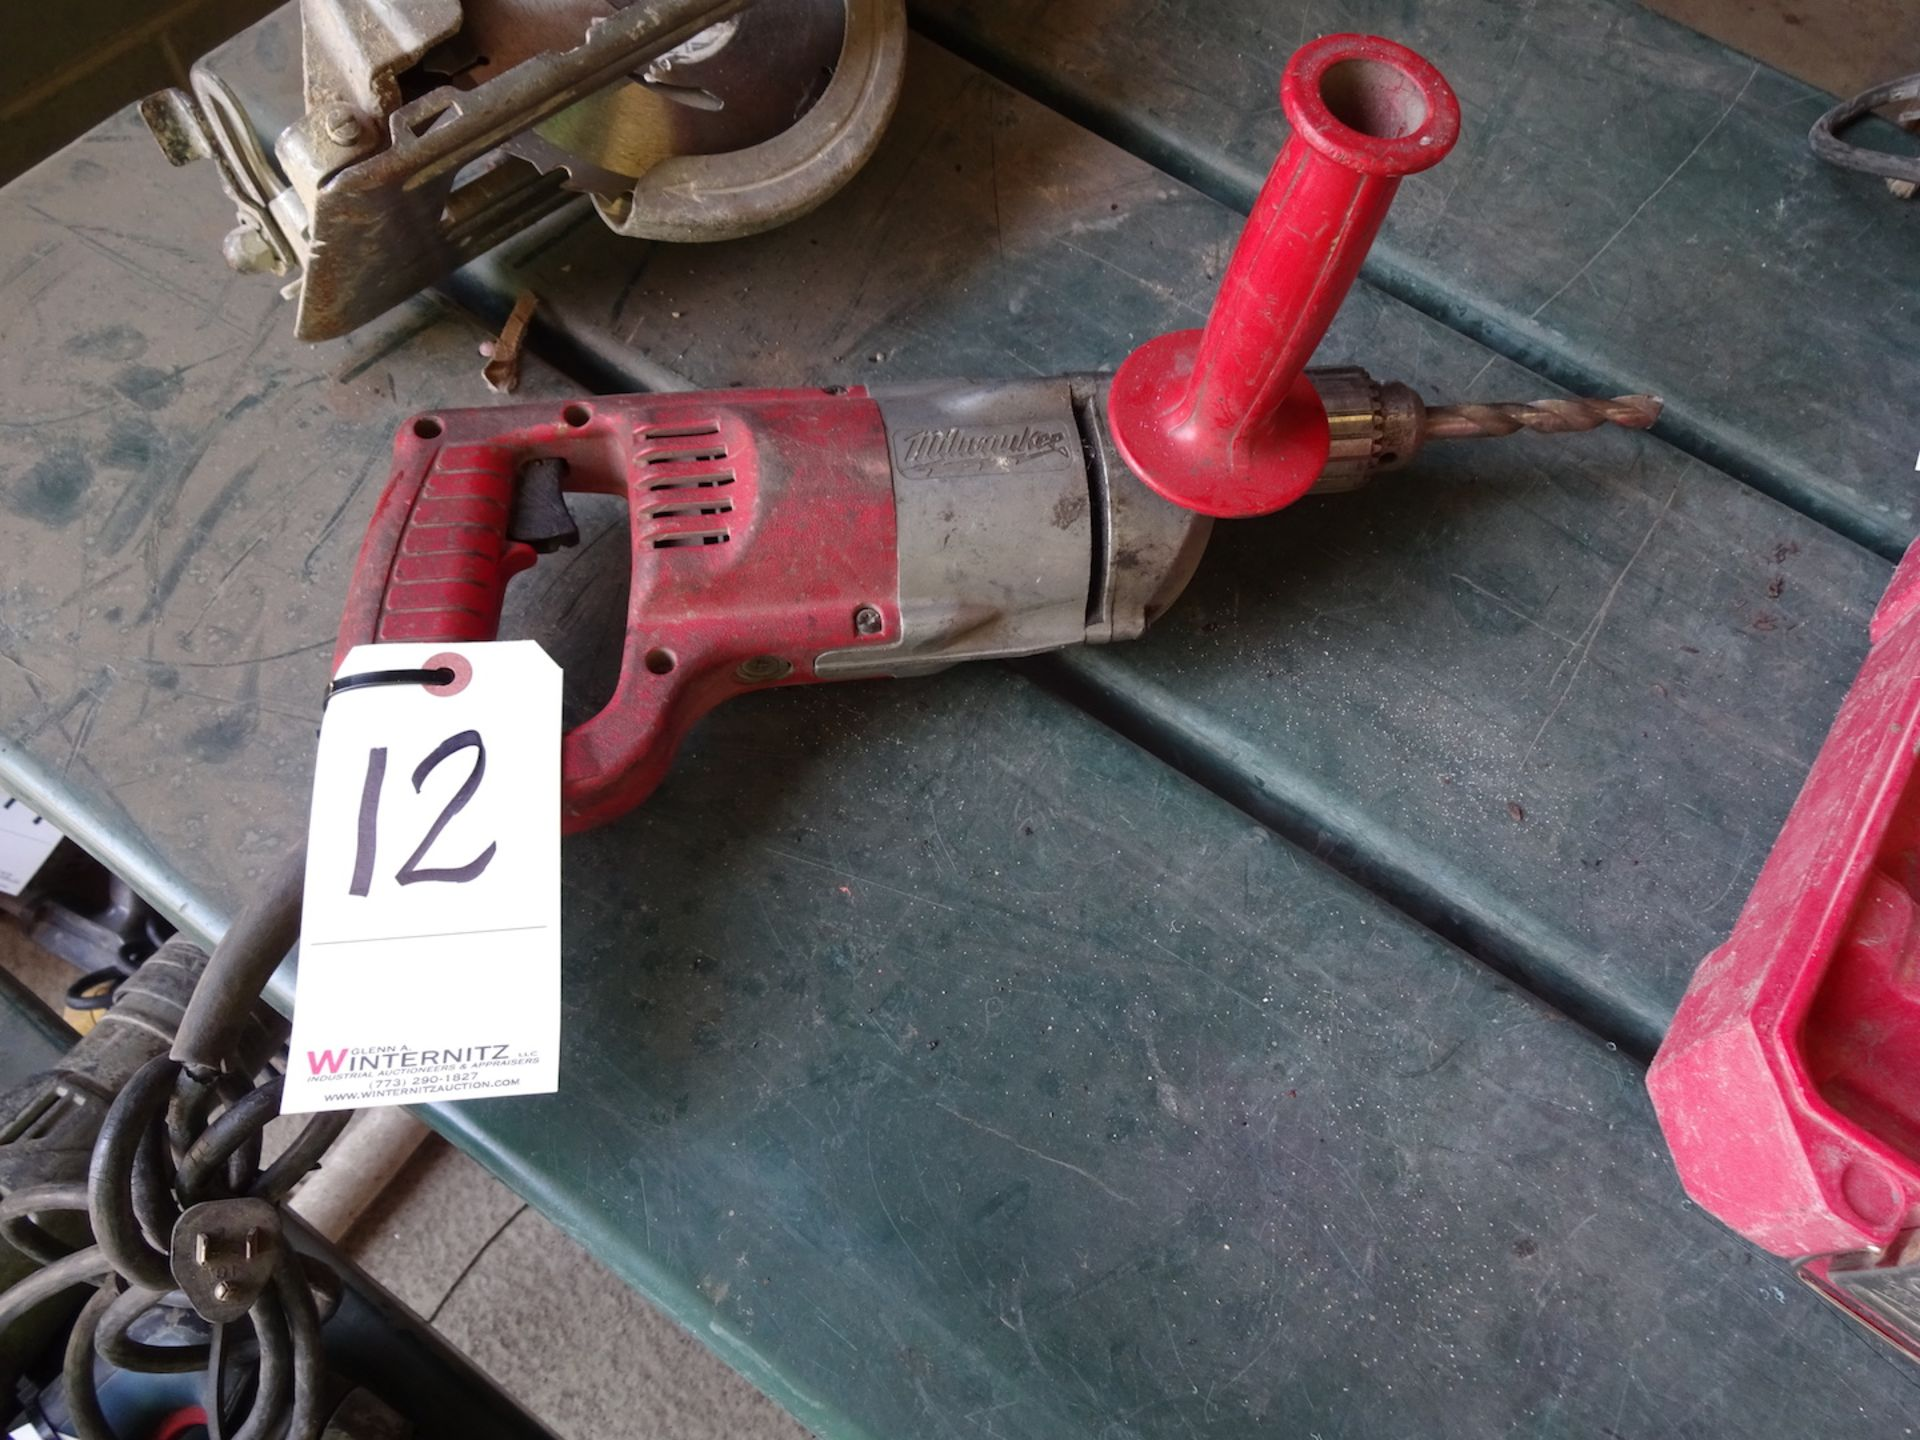 """Lot 12 - MILWAUKEE 1/2"""" ELECTRIC DRILL"""